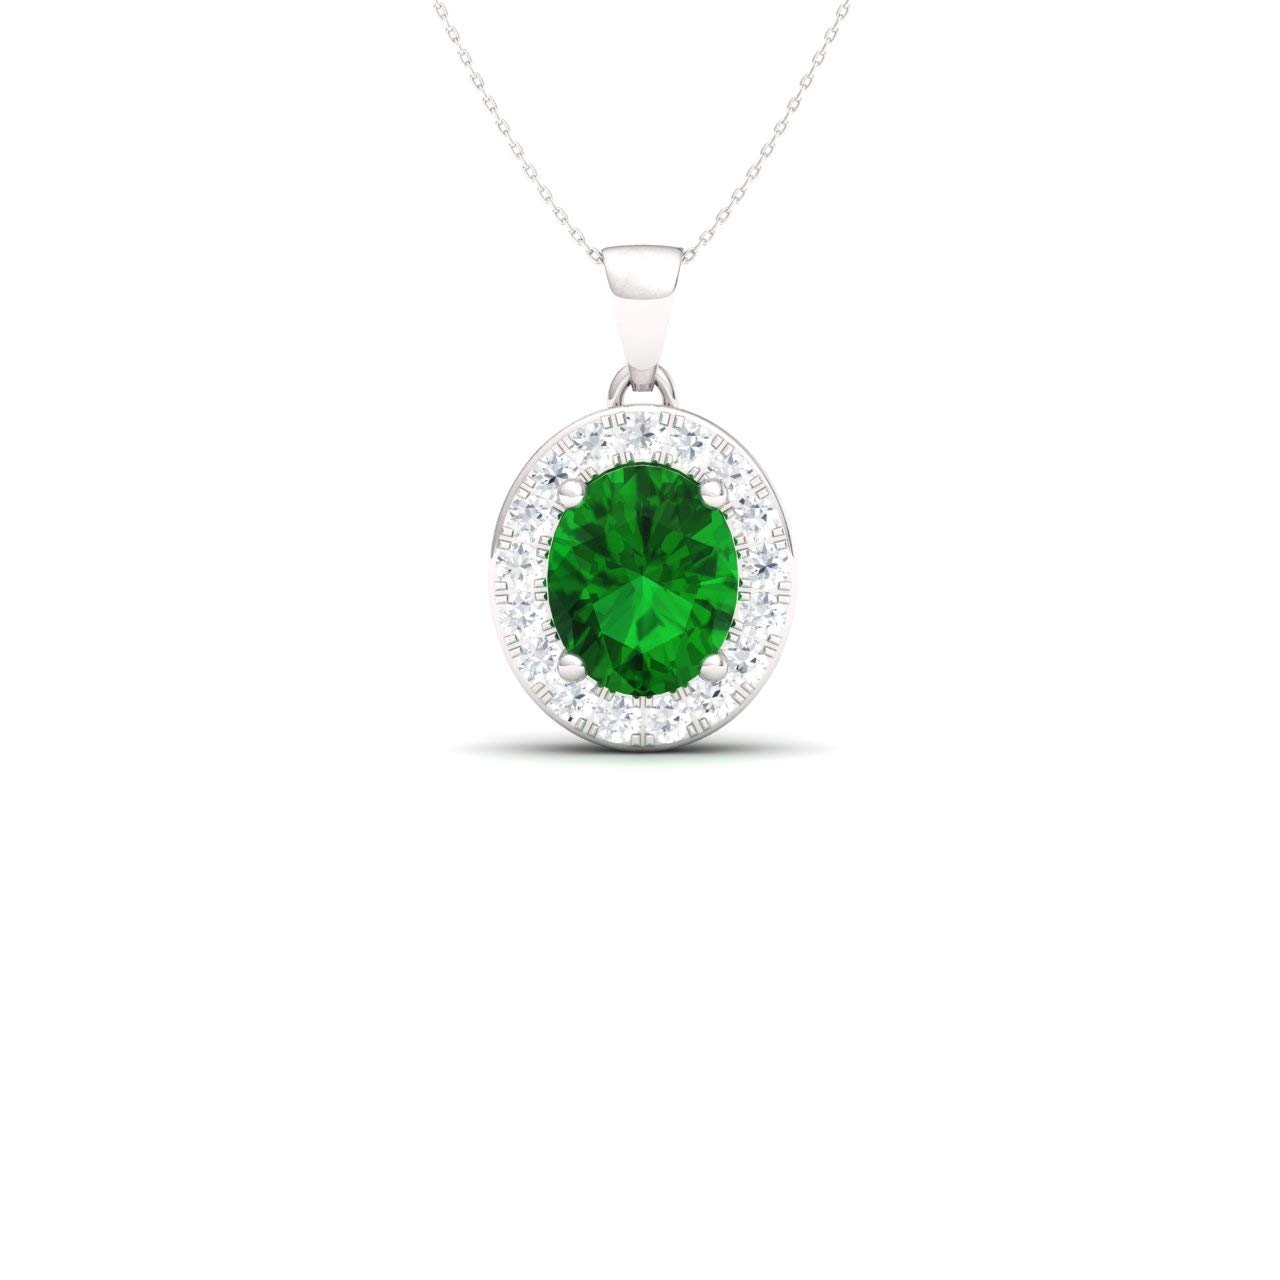 Diamondere Natural and Certified Oval Cut Emerald and Diamond Necklace in 14k White Gold | 0.51 Carat Pendant with Chain